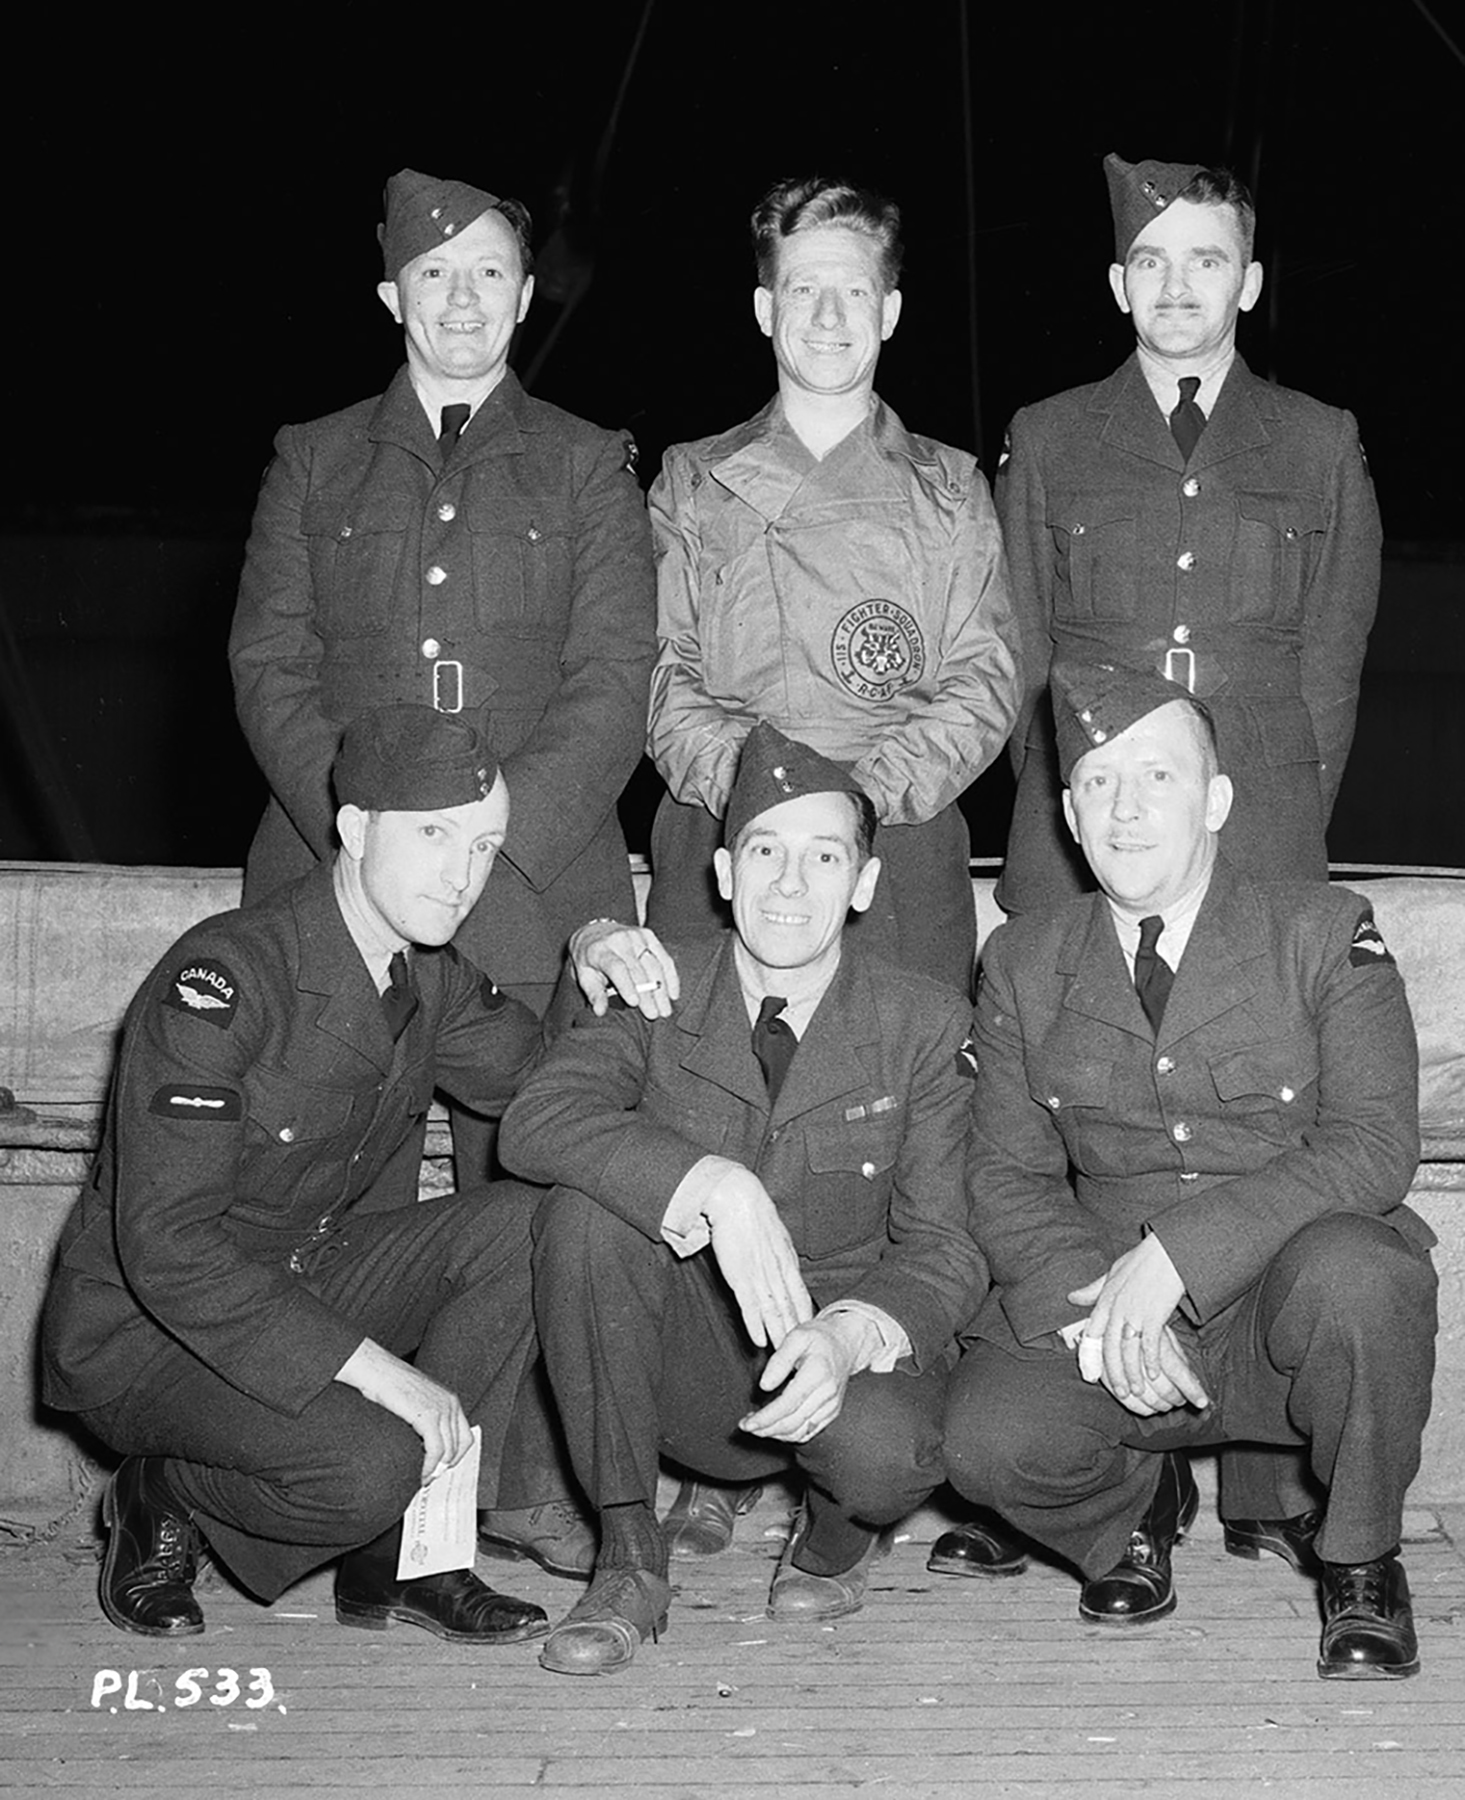 While groundcrew kept the aircraft of No. 1 Fighter Squadron fueled, these squadron cooks kept the aircrew and groundcrew fueled. Front row, from left: Leading Aircraftman W.J. Hyndman (Calgary, Alberta), Aircraftman First Class J. J. Davis (Owen Sound, Ontario), and Aircraftman First Class A. Jensen (Vancouver, British Columbia). Back row, from left: Aircraftman First Class J.H. Greer (Montreal, Québec), Aircraftman First Class J. Gallagher (Montreal, Québec), and Aircraftman First Class G.F. McGeragle (Vancouver, British Columbia). PHOTO: DND Archives, PL-533